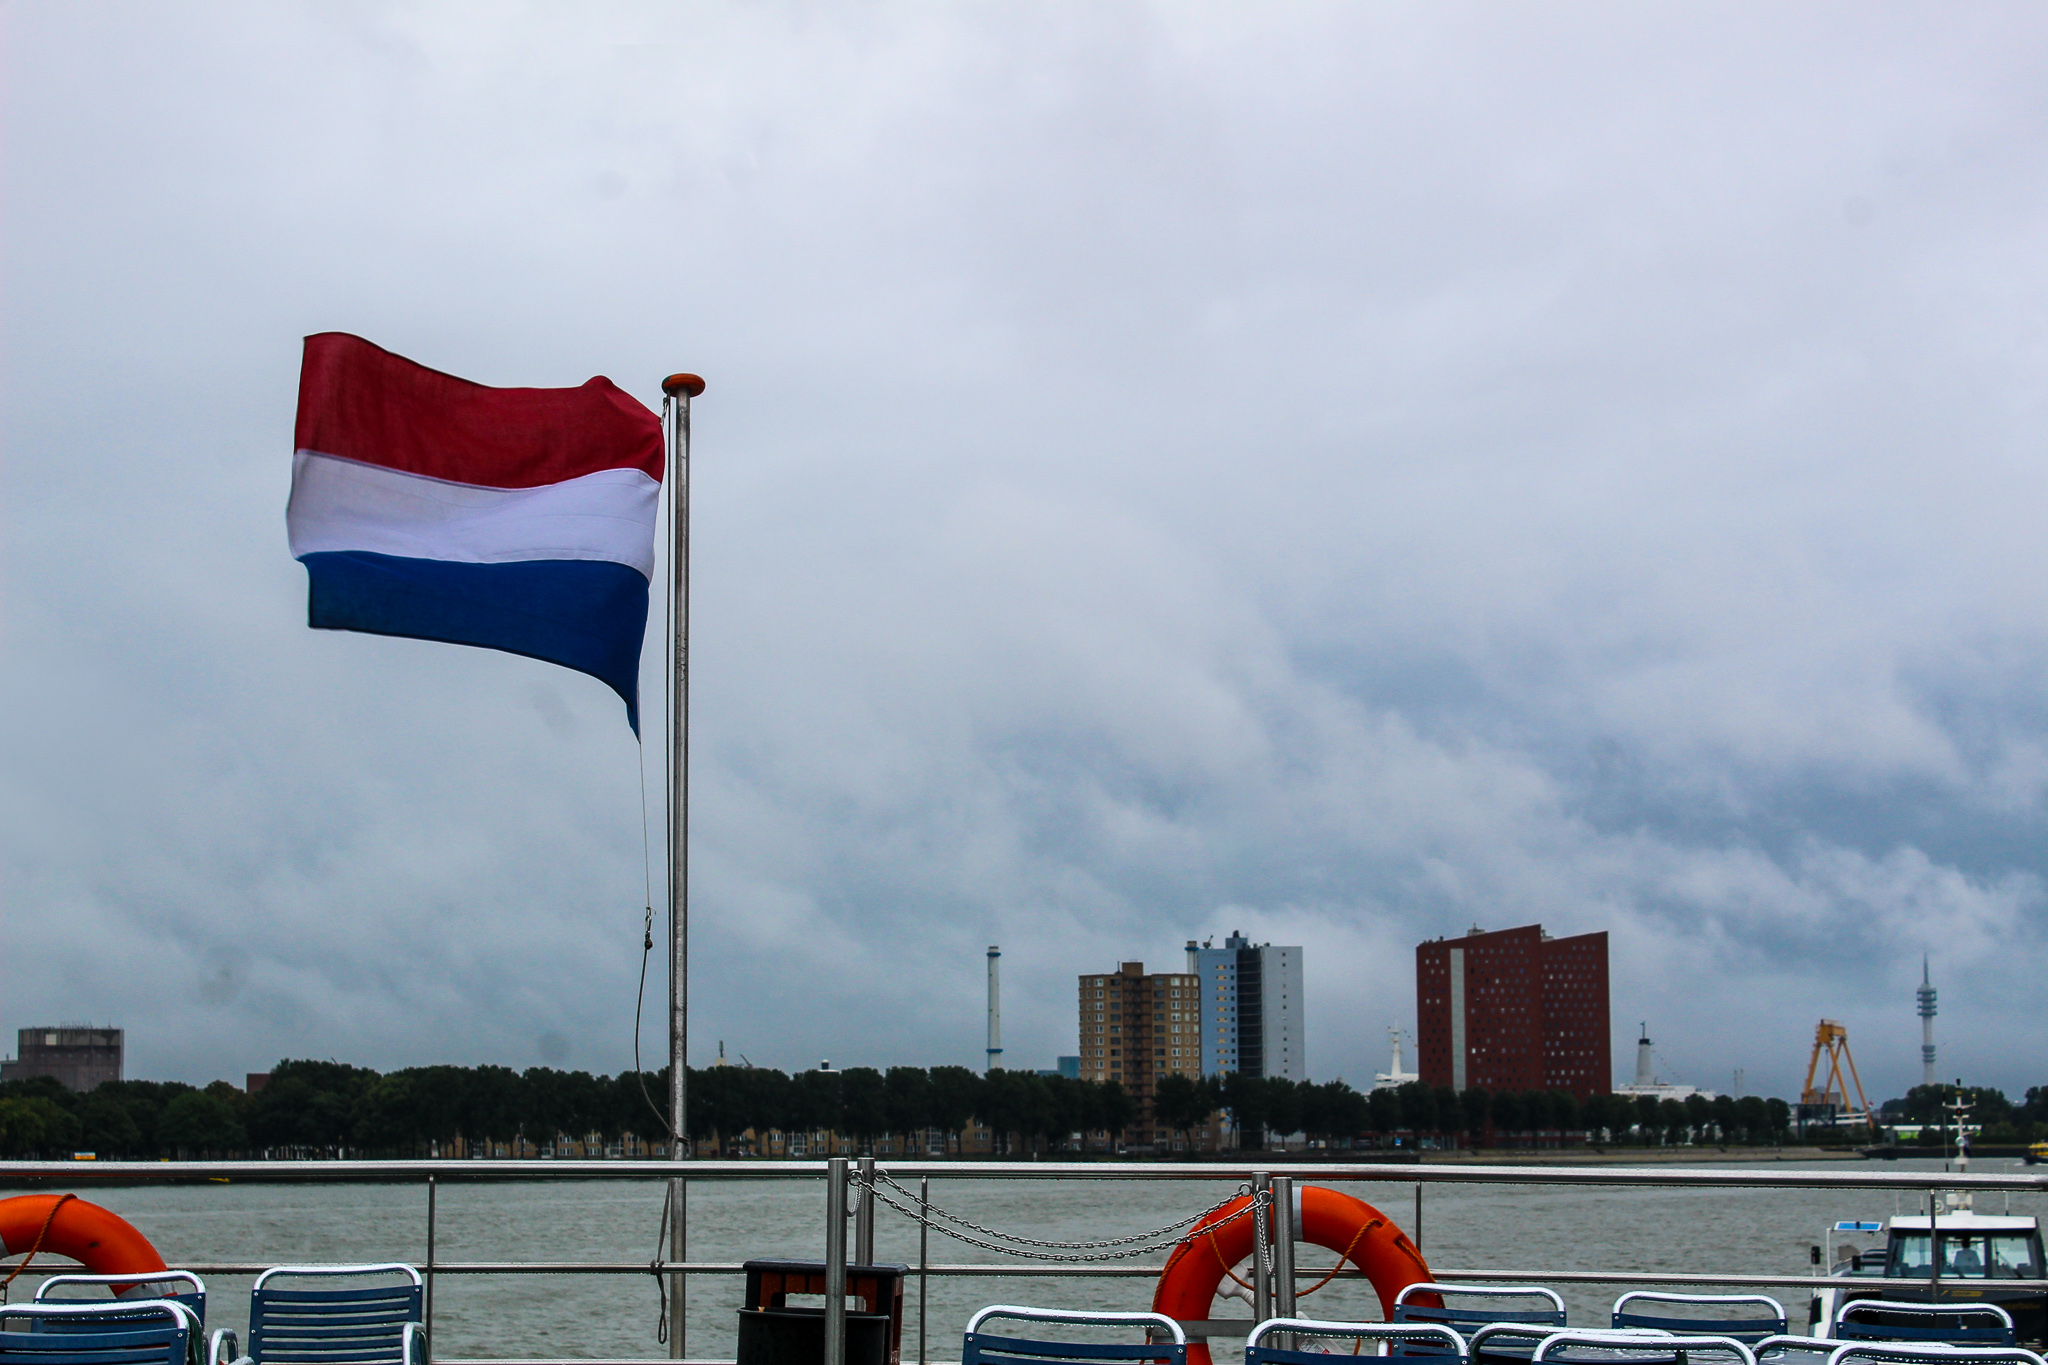 your rotterdam day trip will take you to the harbor